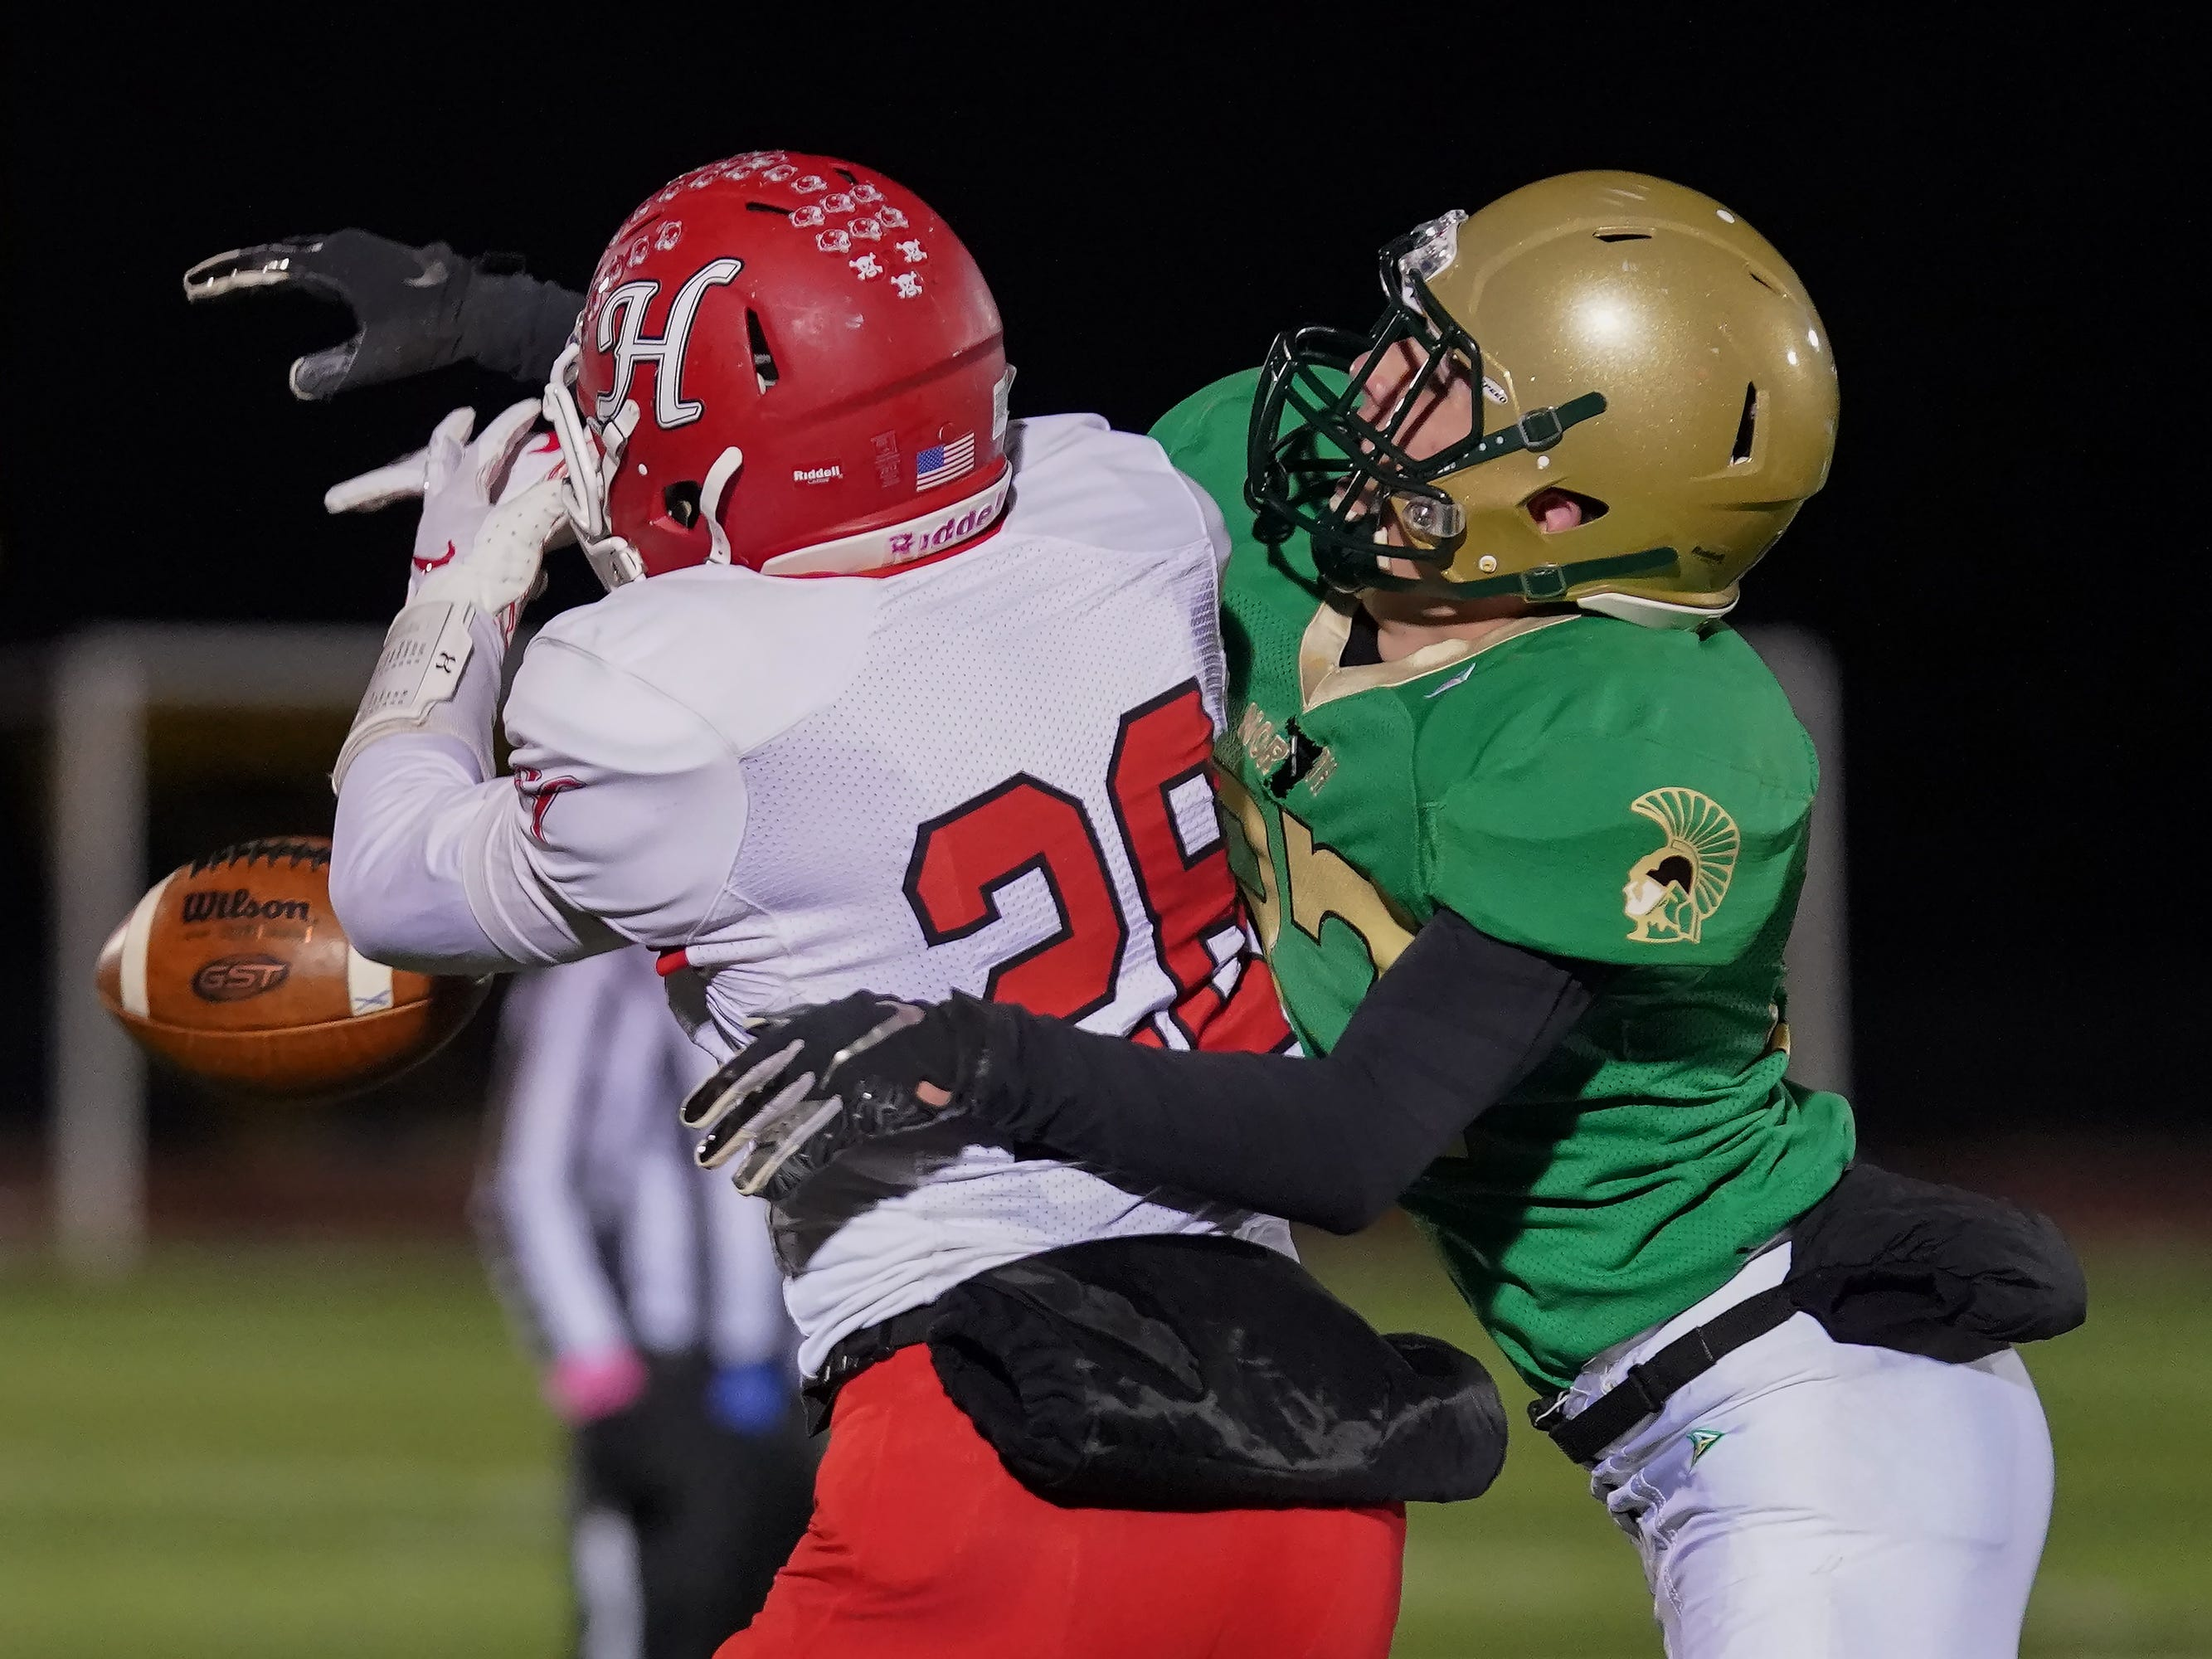 Gage Payne (28) of Hortonville can't hang on to a pass. The Oshkosh North Spartans hosted the Hortonville Polar Bears in an FVA-South conference matchup Friday evening, October 12, 2018 at J. J. Keller Field at Titan Stadium.